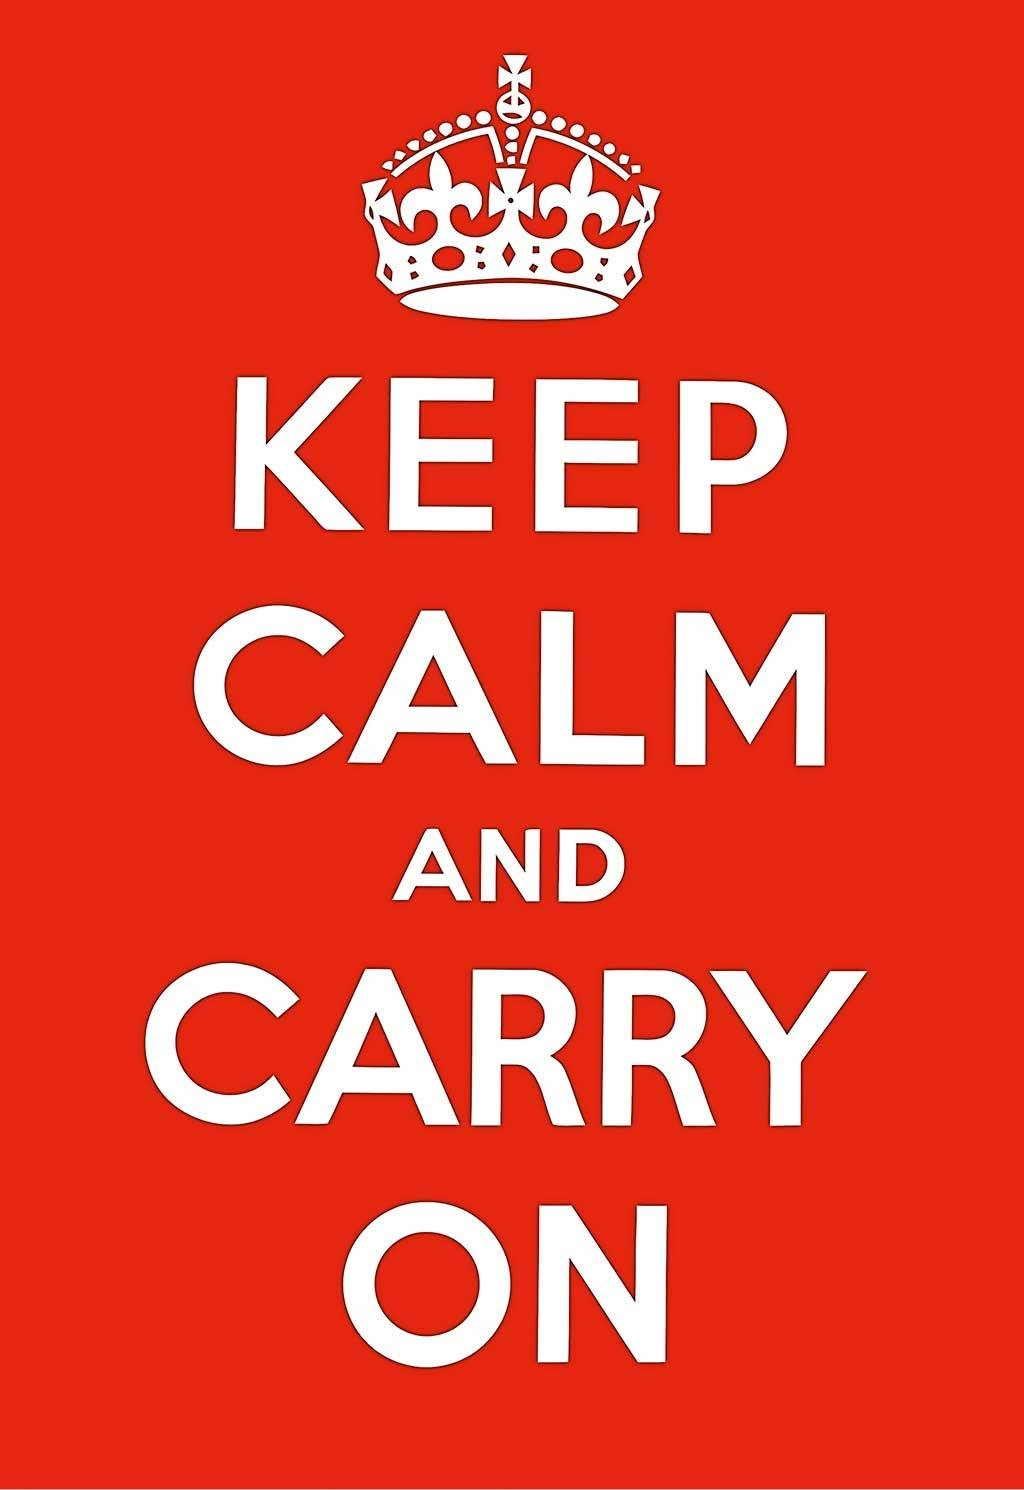 Keep Calm And Carry On Poster Prints Wall Decoration Art Pictures Pertaining To 2017 Keep Calm And Carry On Wall Art (View 9 of 25)